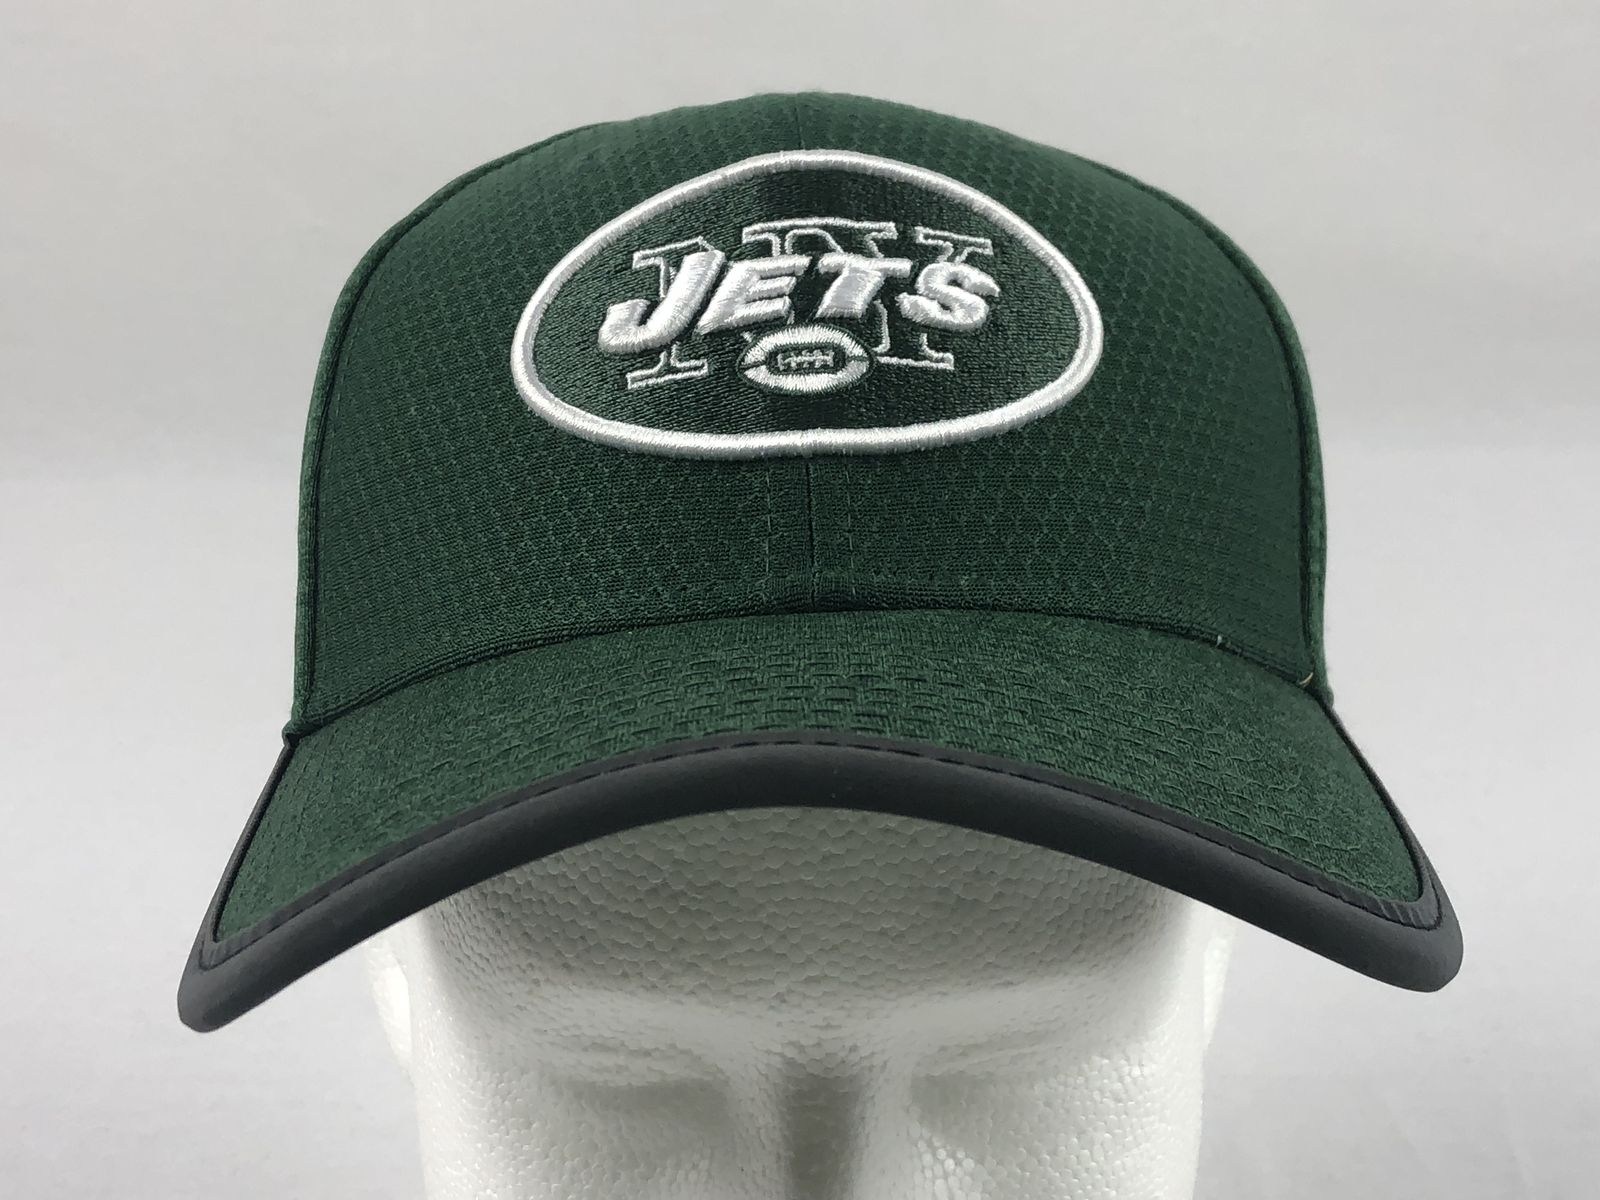 Details about New Era New York Jets - Green Fitted Hat (Multiple Sizes) -  Used c41fa6c0e